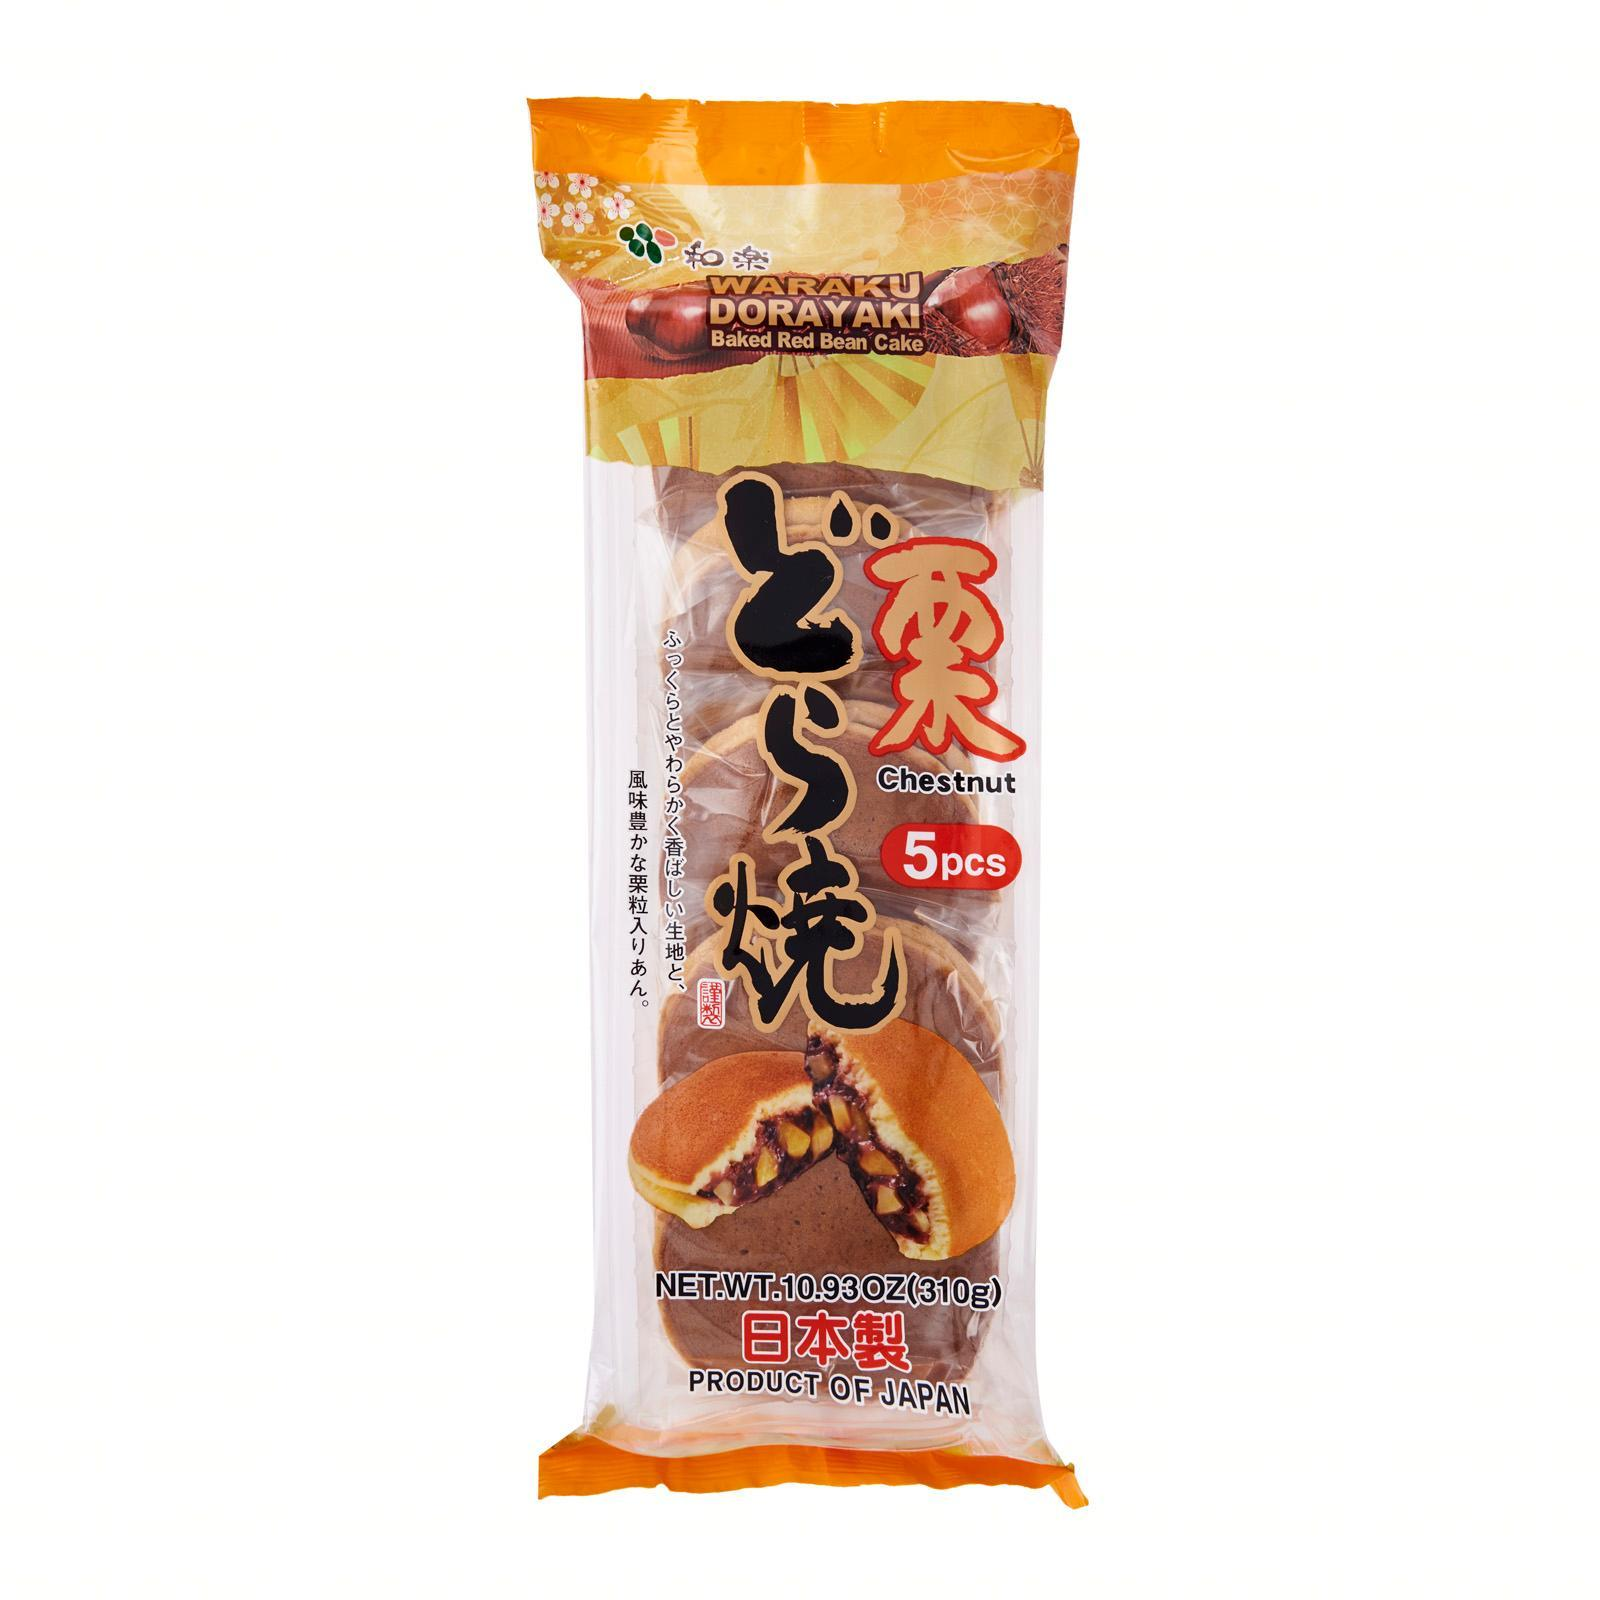 Waraku Dorayaki Japanese Red Bean Pancake With Chestnuts 5 Pcs Pack - Kirei By Redmart.